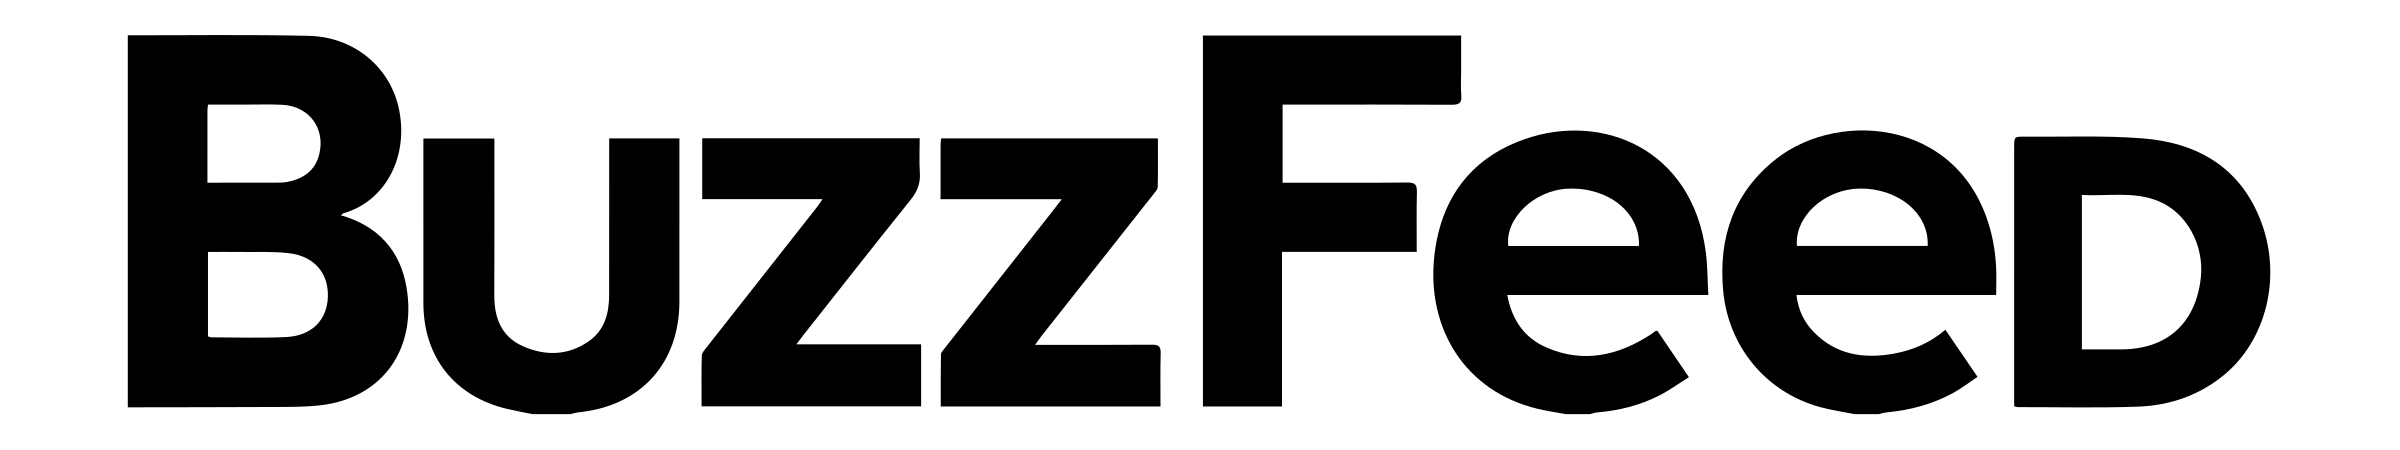 Buzzfeed logo black transparent 1